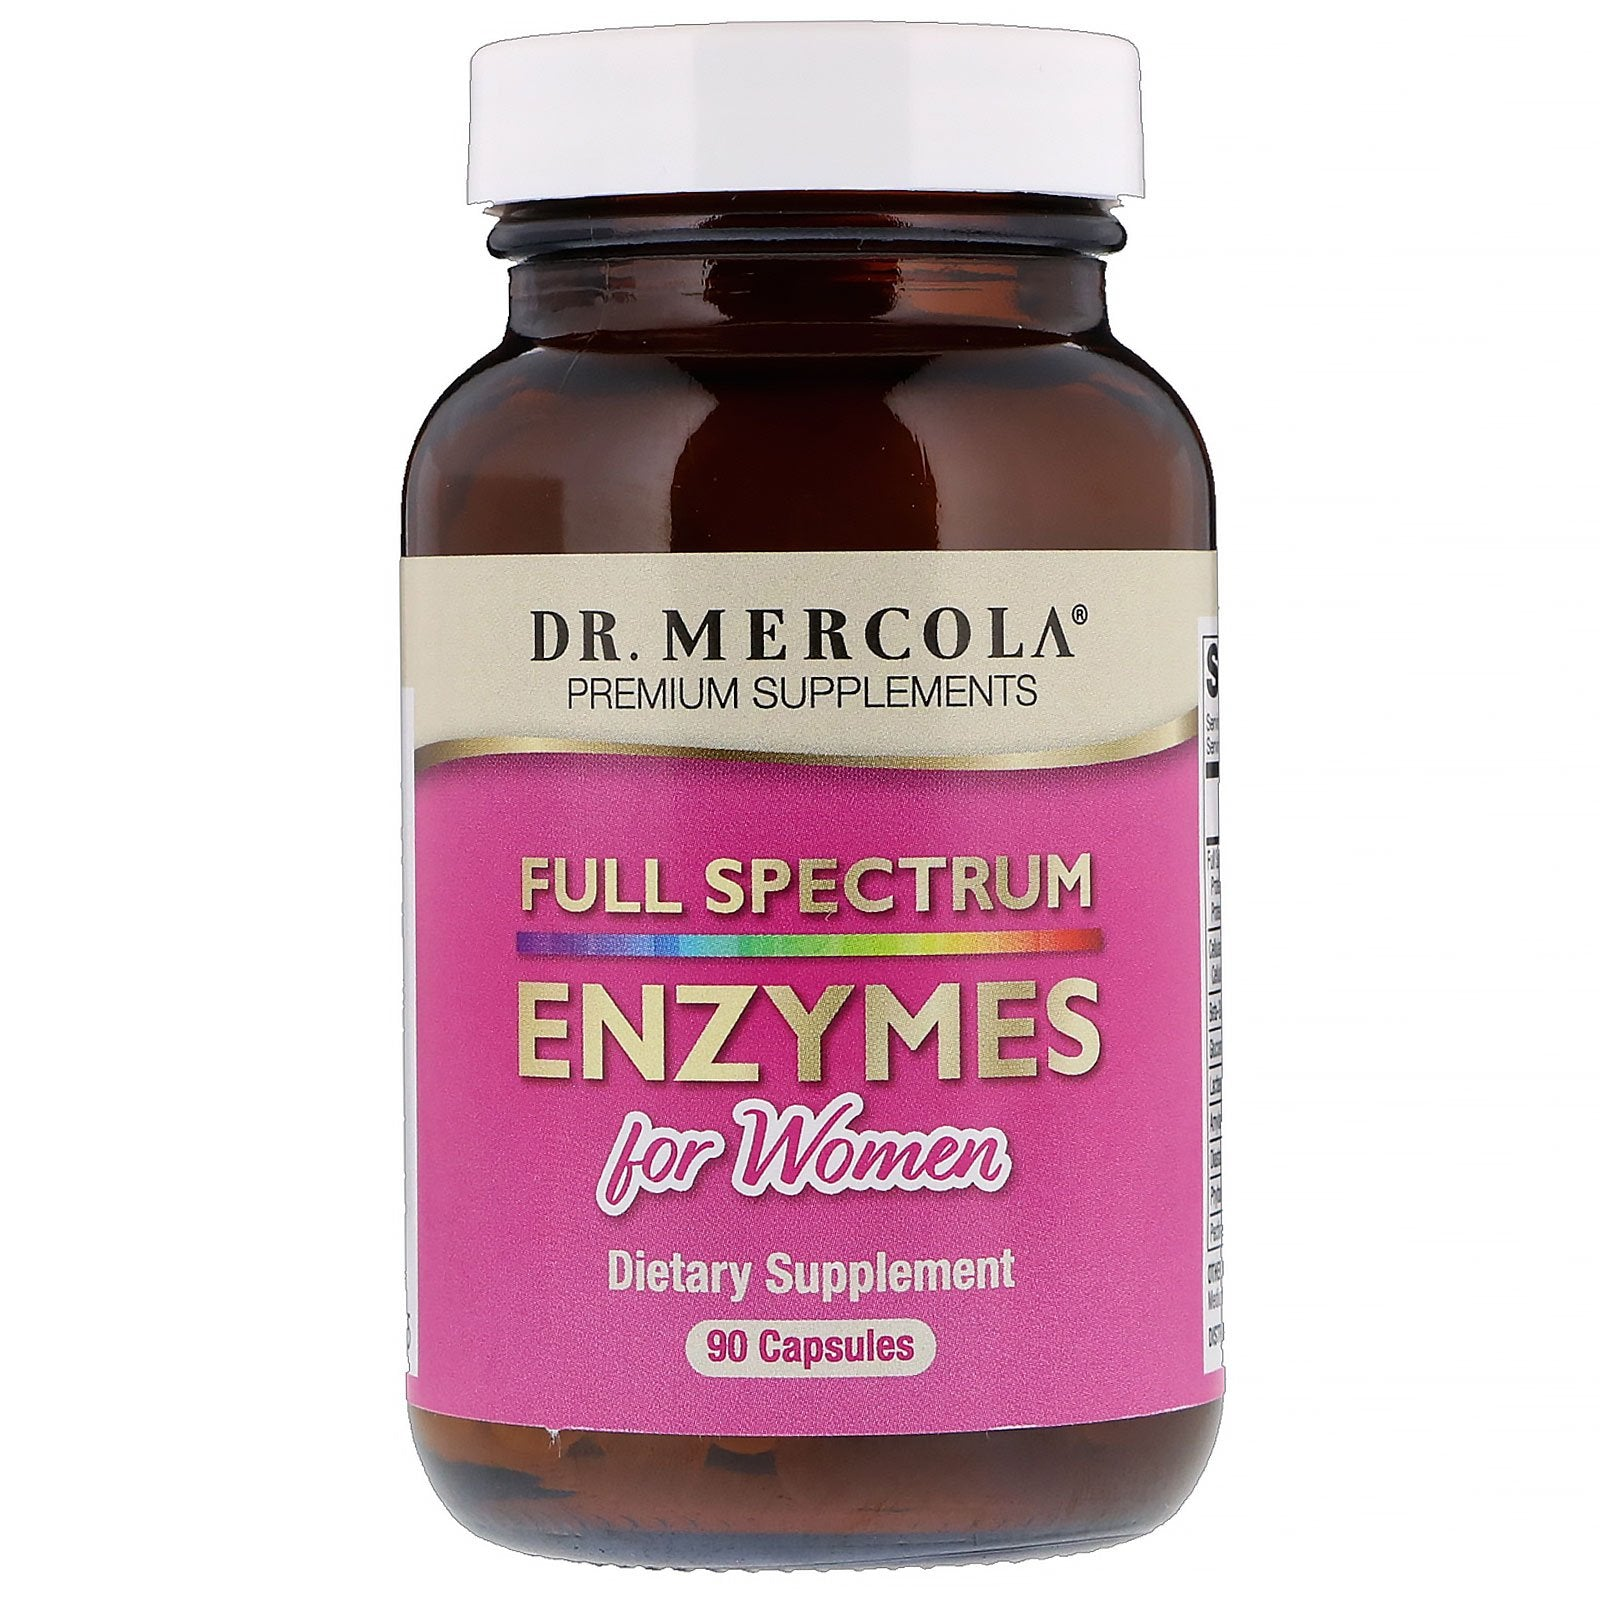 Full Spectrum Enzymes for Women - 90 Capsules by Dr. Mercola - Vitasell.net